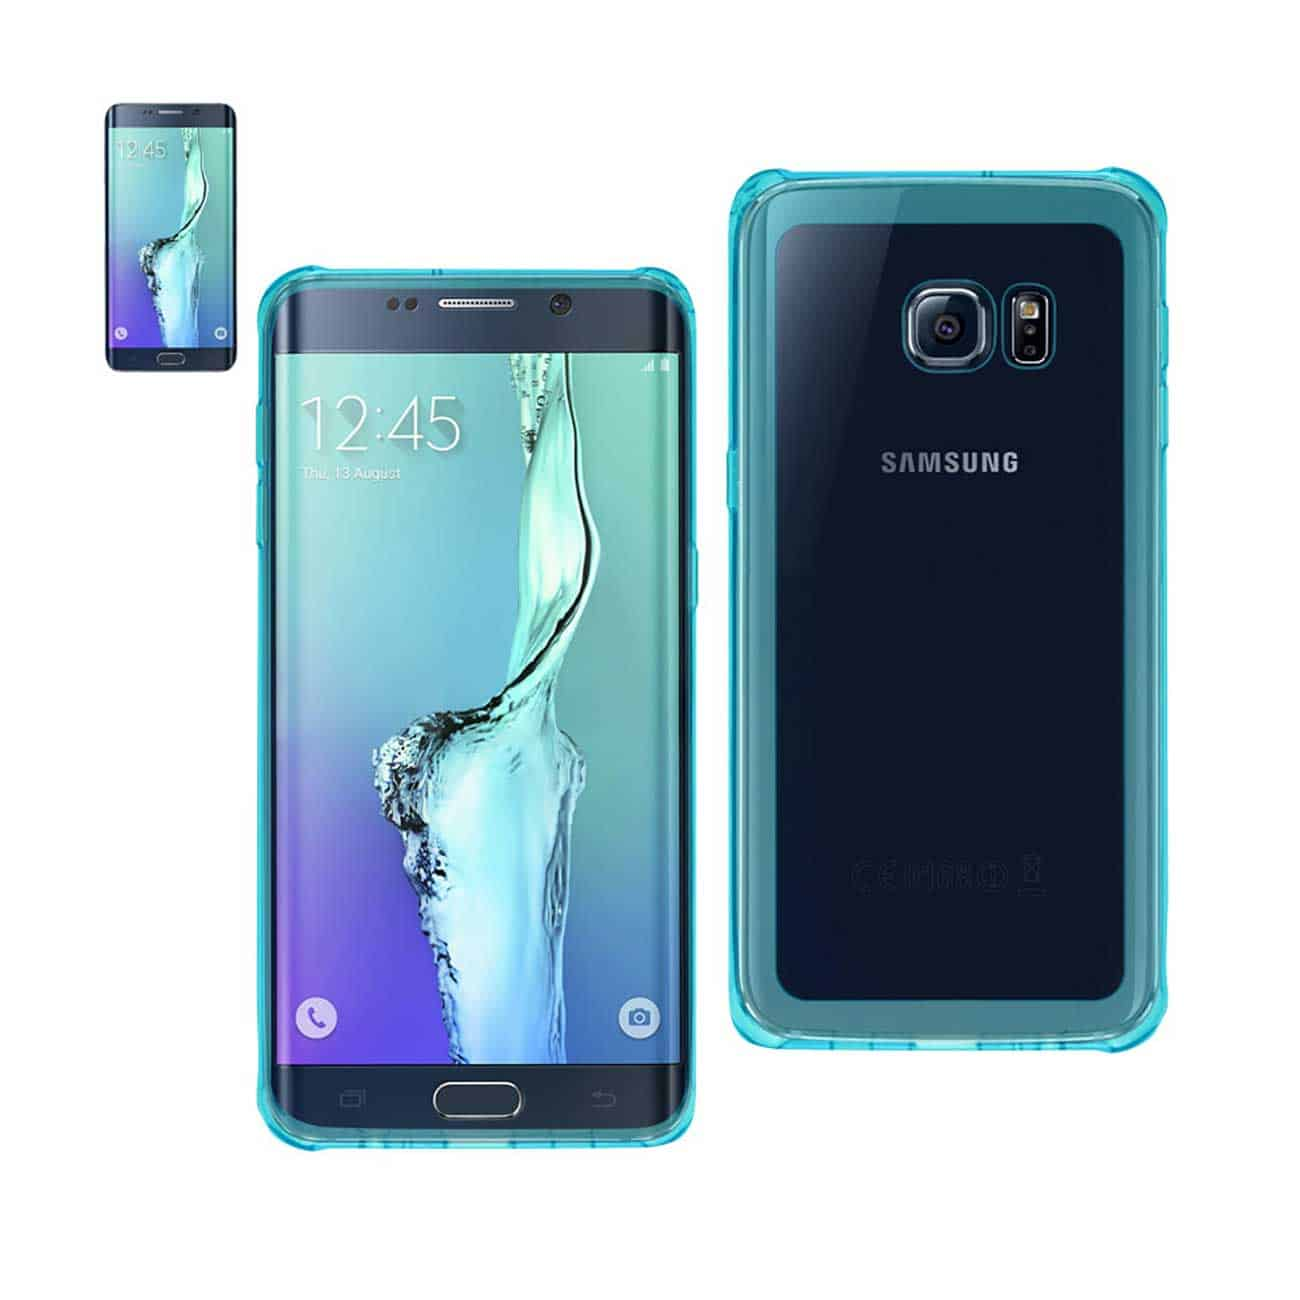 SAMSUNG GALAXY S6 EDGE PLUS MIRROR EFFECT CASE WITH AIR CUSHION PROTECTION IN CLEAR NAVY